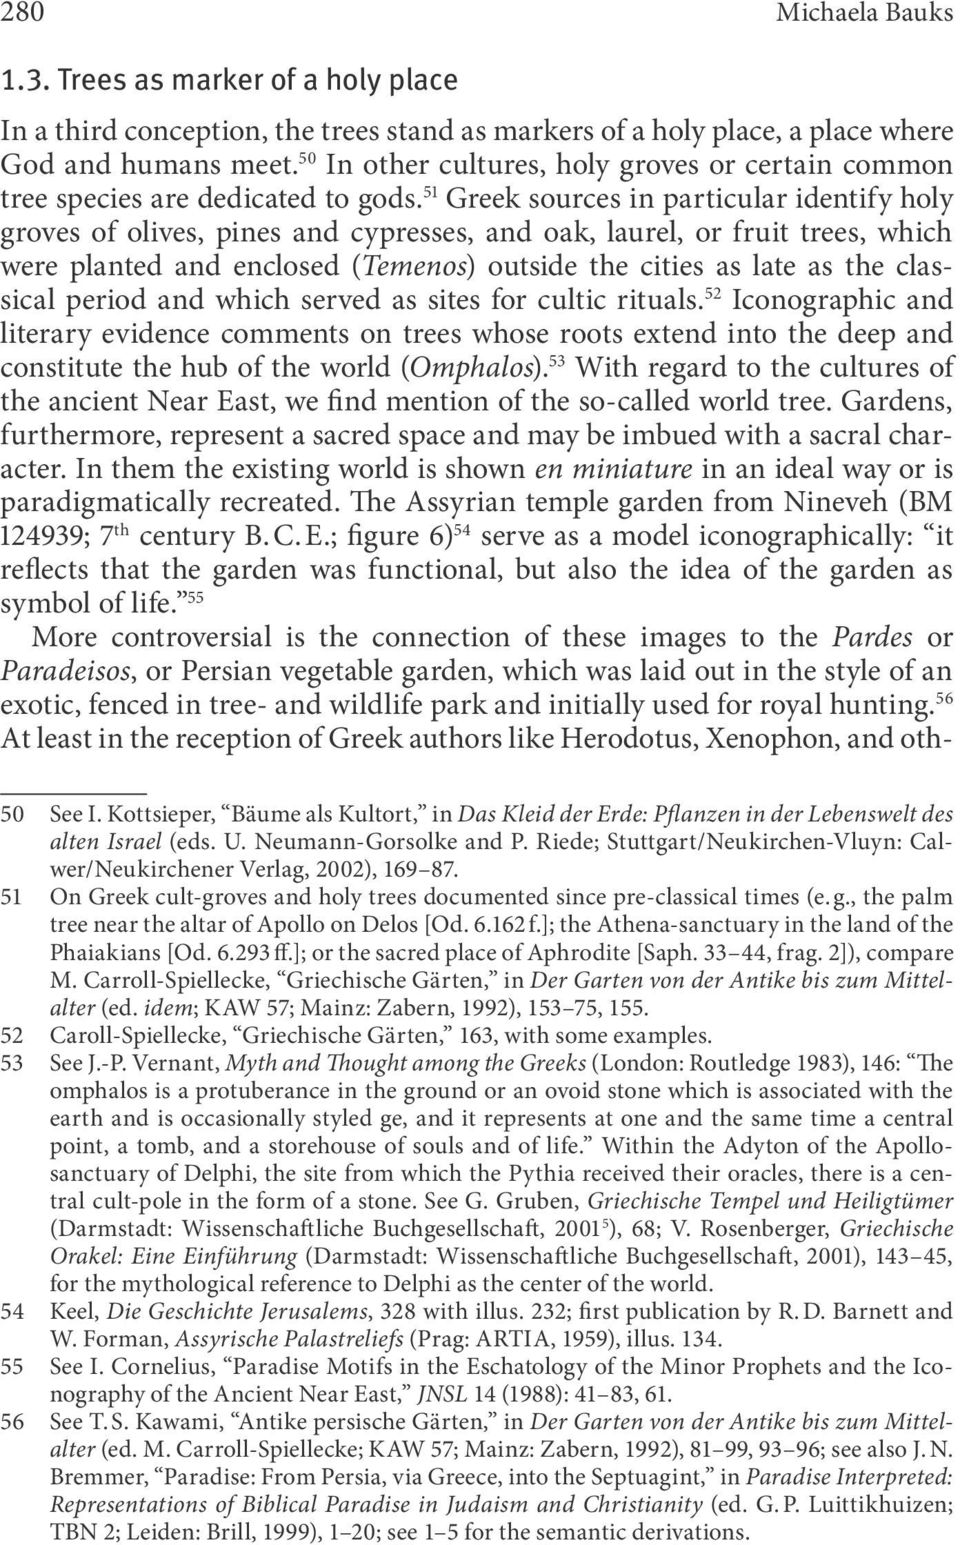 51 Greek sources in particular identify holy groves of olives, pines and cypresses, and oak, laurel, or fruit trees, which were planted and enclosed (Temenos) outside the cities as late as the